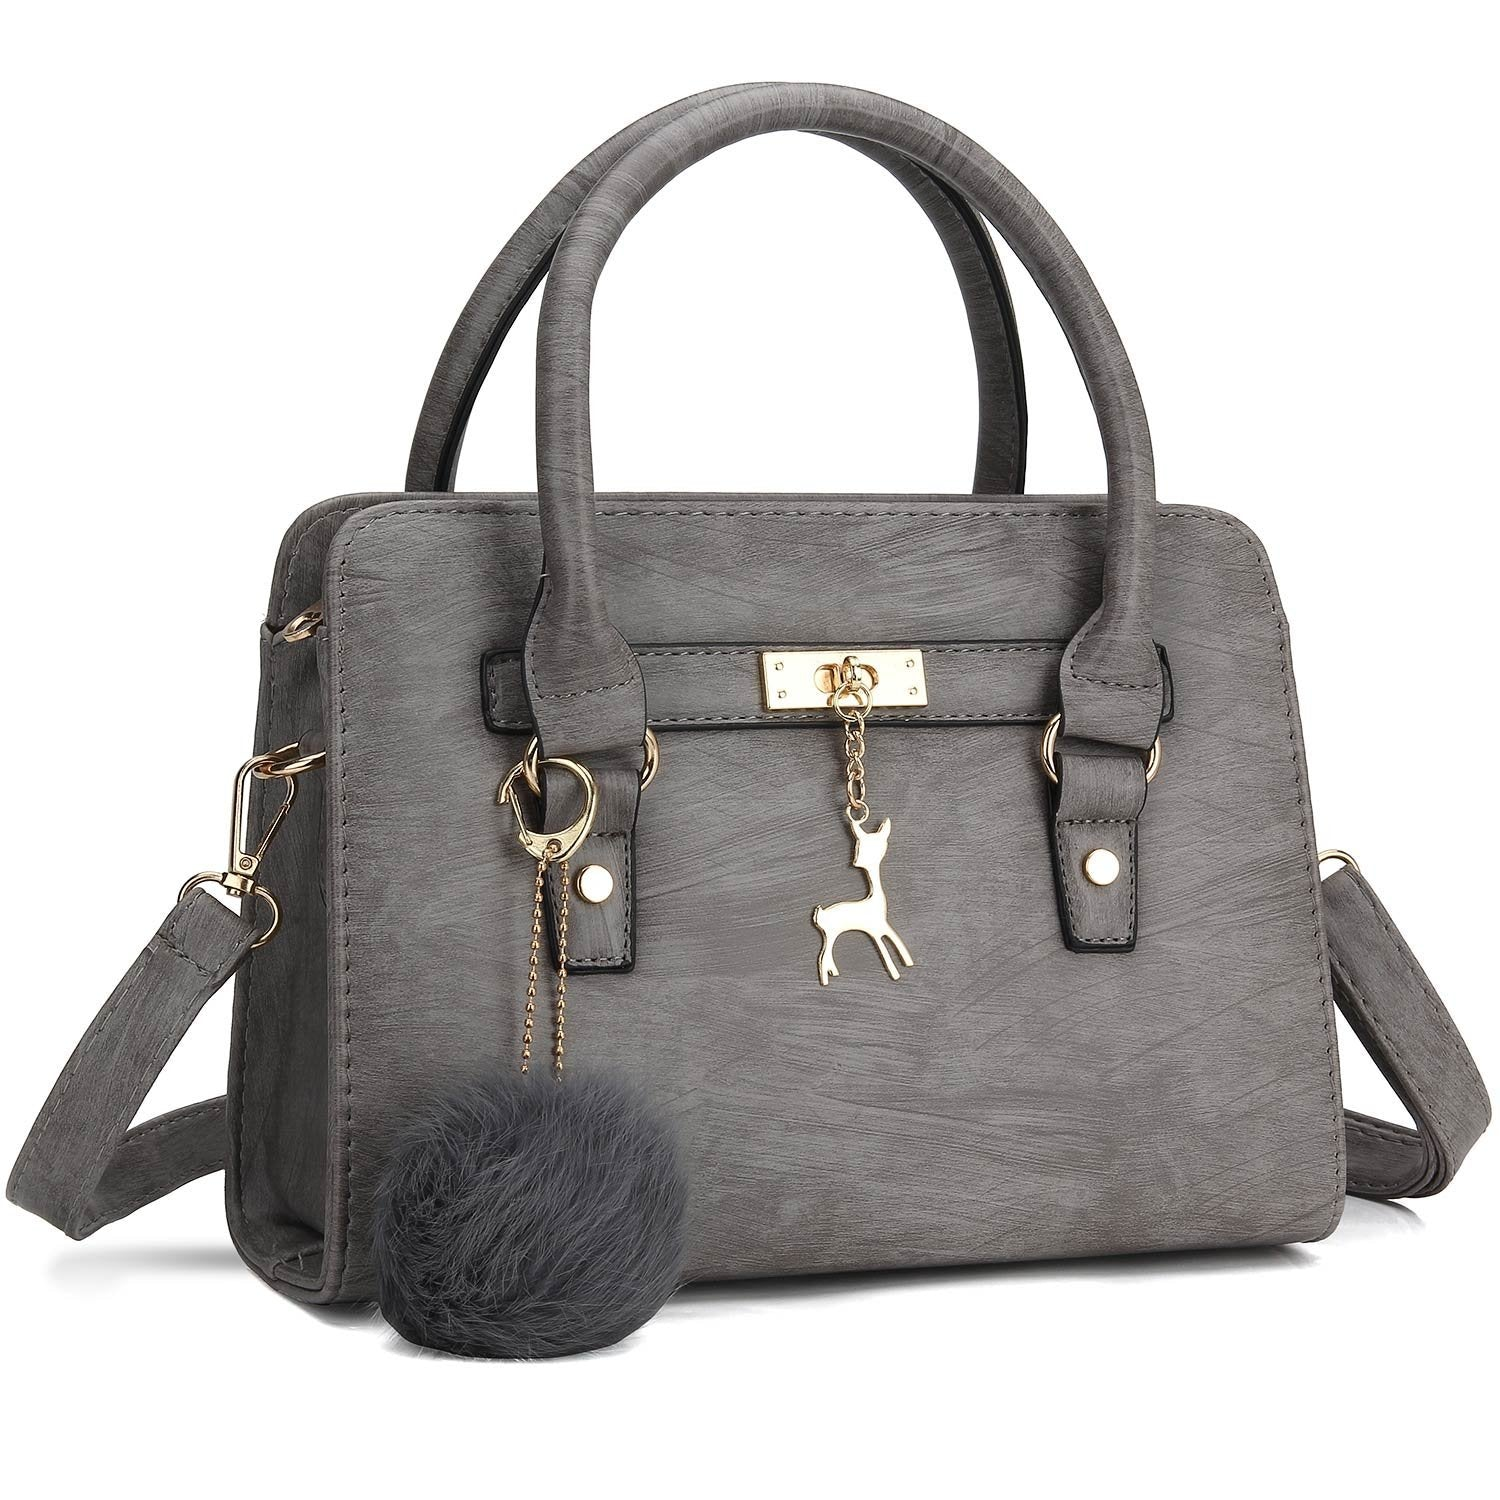 922a06ffd7eb ... Bagerly Women Fashion PU Leather Purses and Handbags Shoulder Bags Top-Handle  Satchel Tote Bag ...